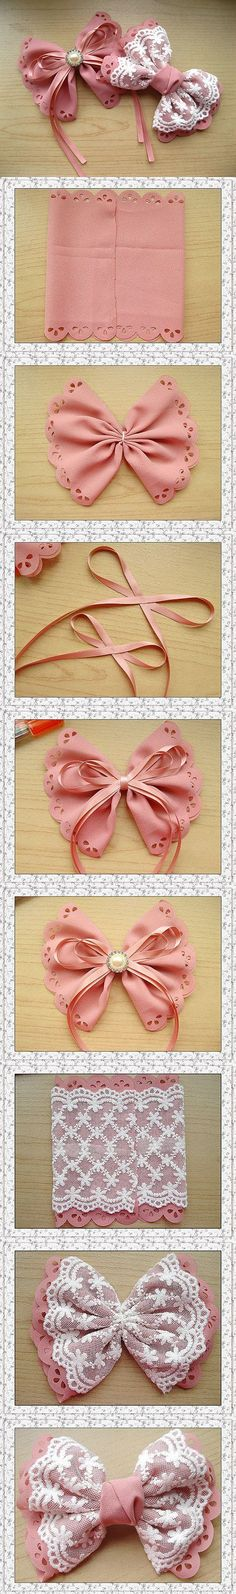 This only has the visual instructions, but it looks do-able. It is so cute, I have to try it. Popular Pix